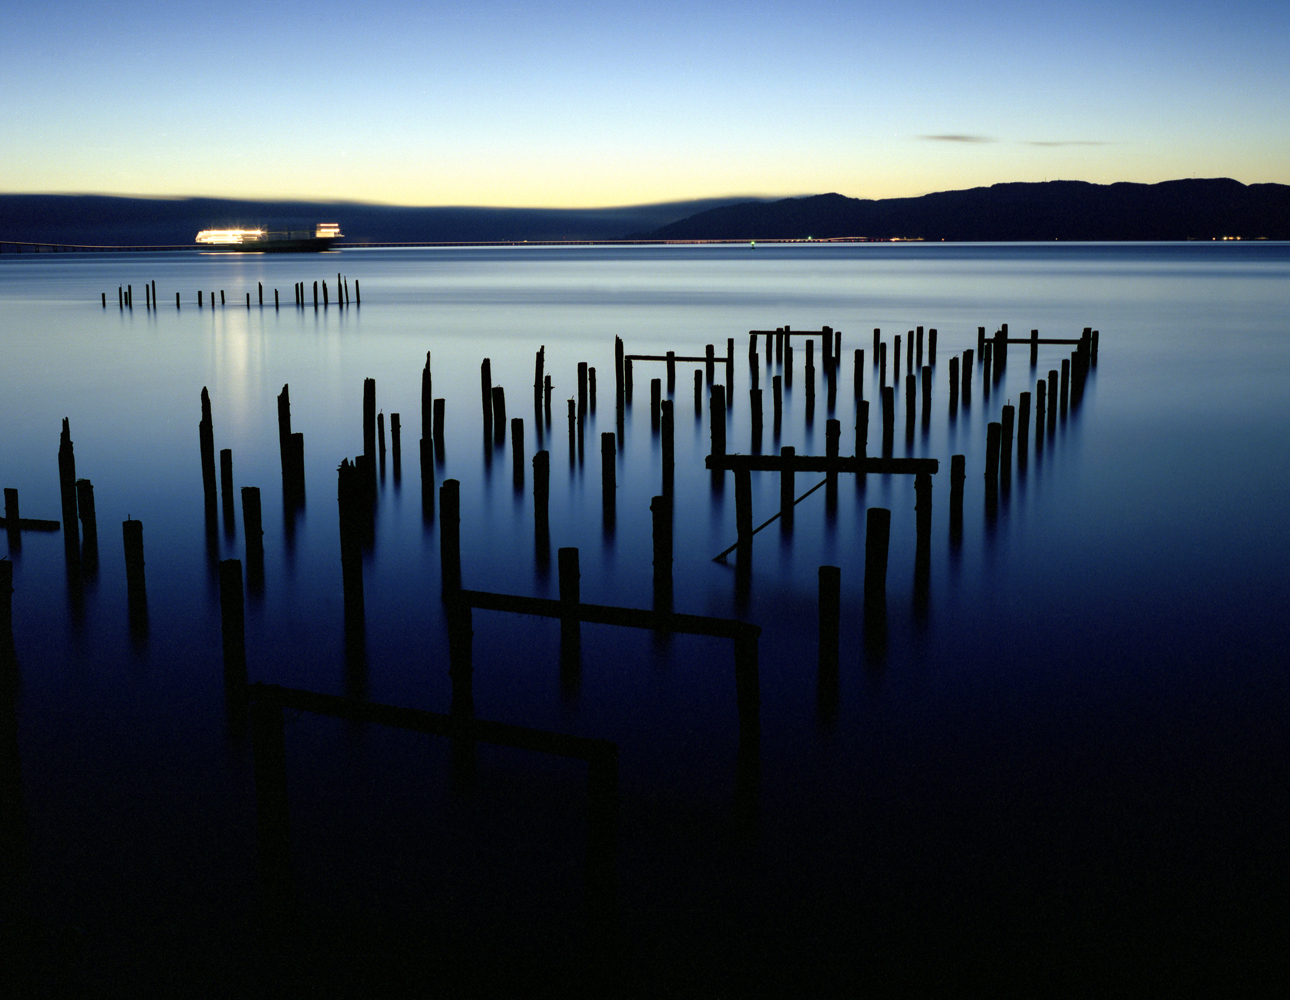 Pilings and Passing Ship, Columbia River